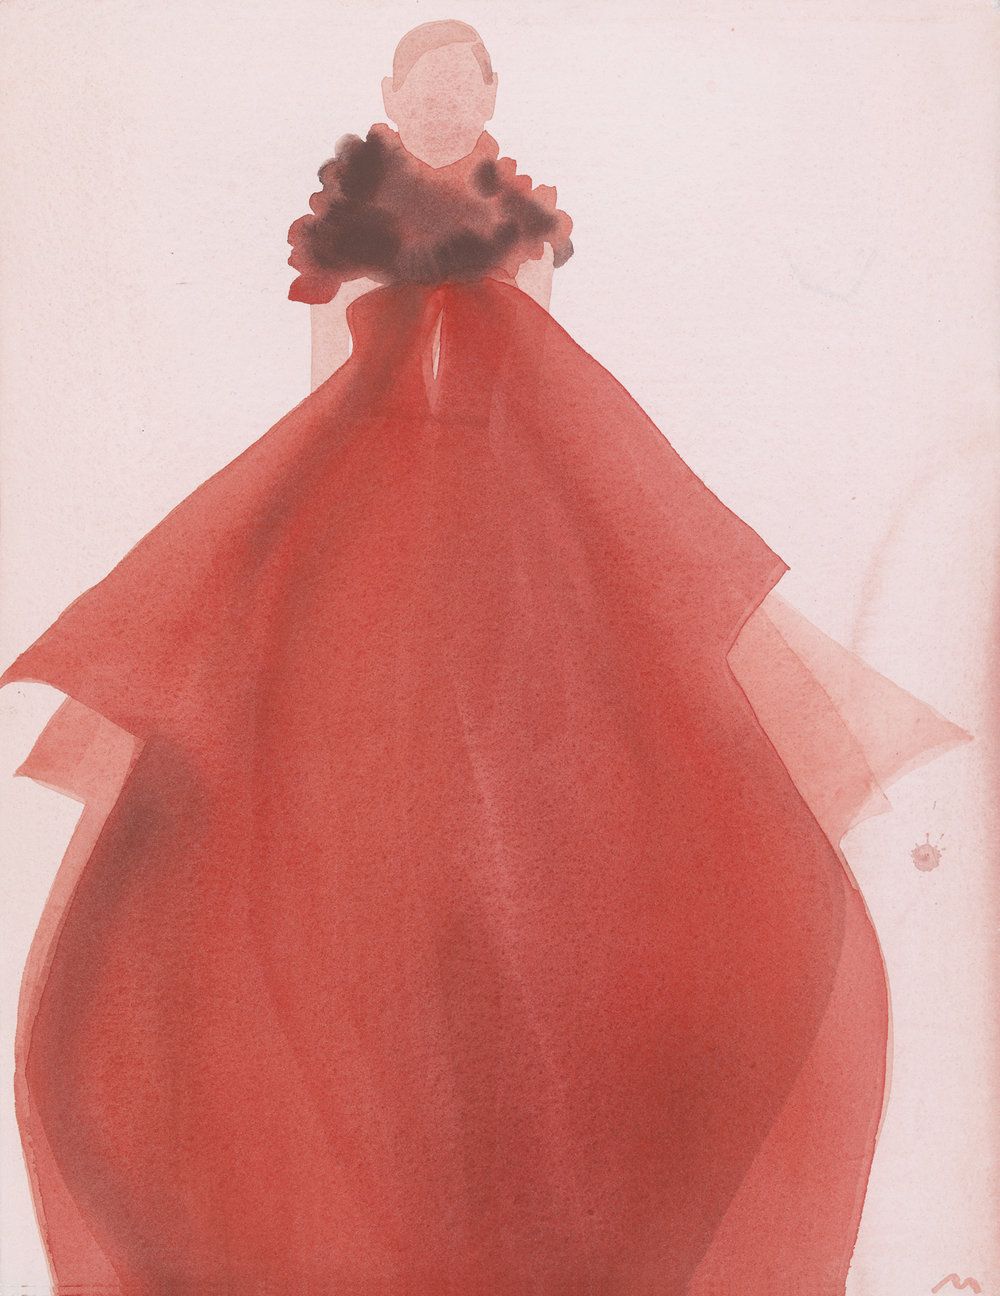 Mats Gustafson   Red Evening Dress (Gucci)  For Vogue China 2011 Watercolor 43,5 x 33,5 cm